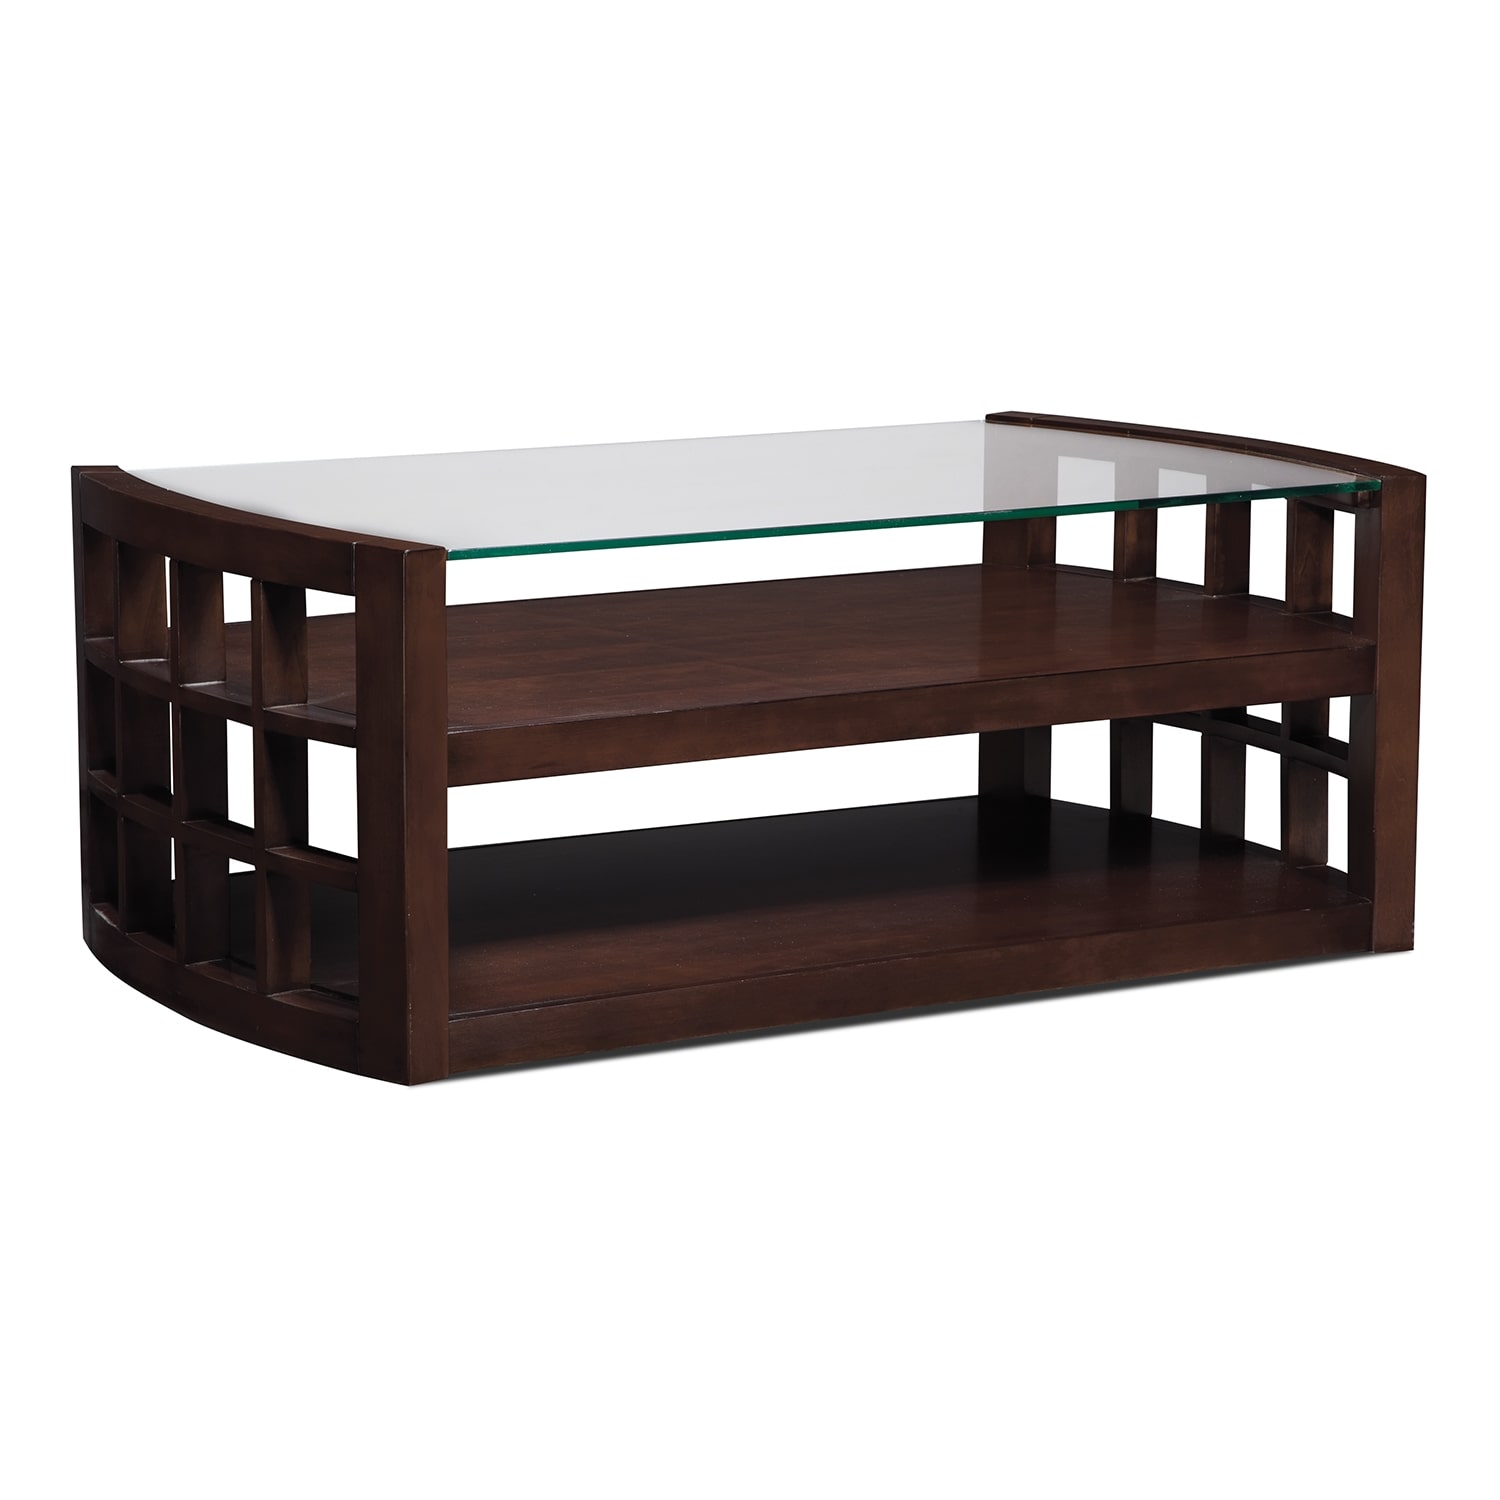 Daytona Cocktail Table - Merlot